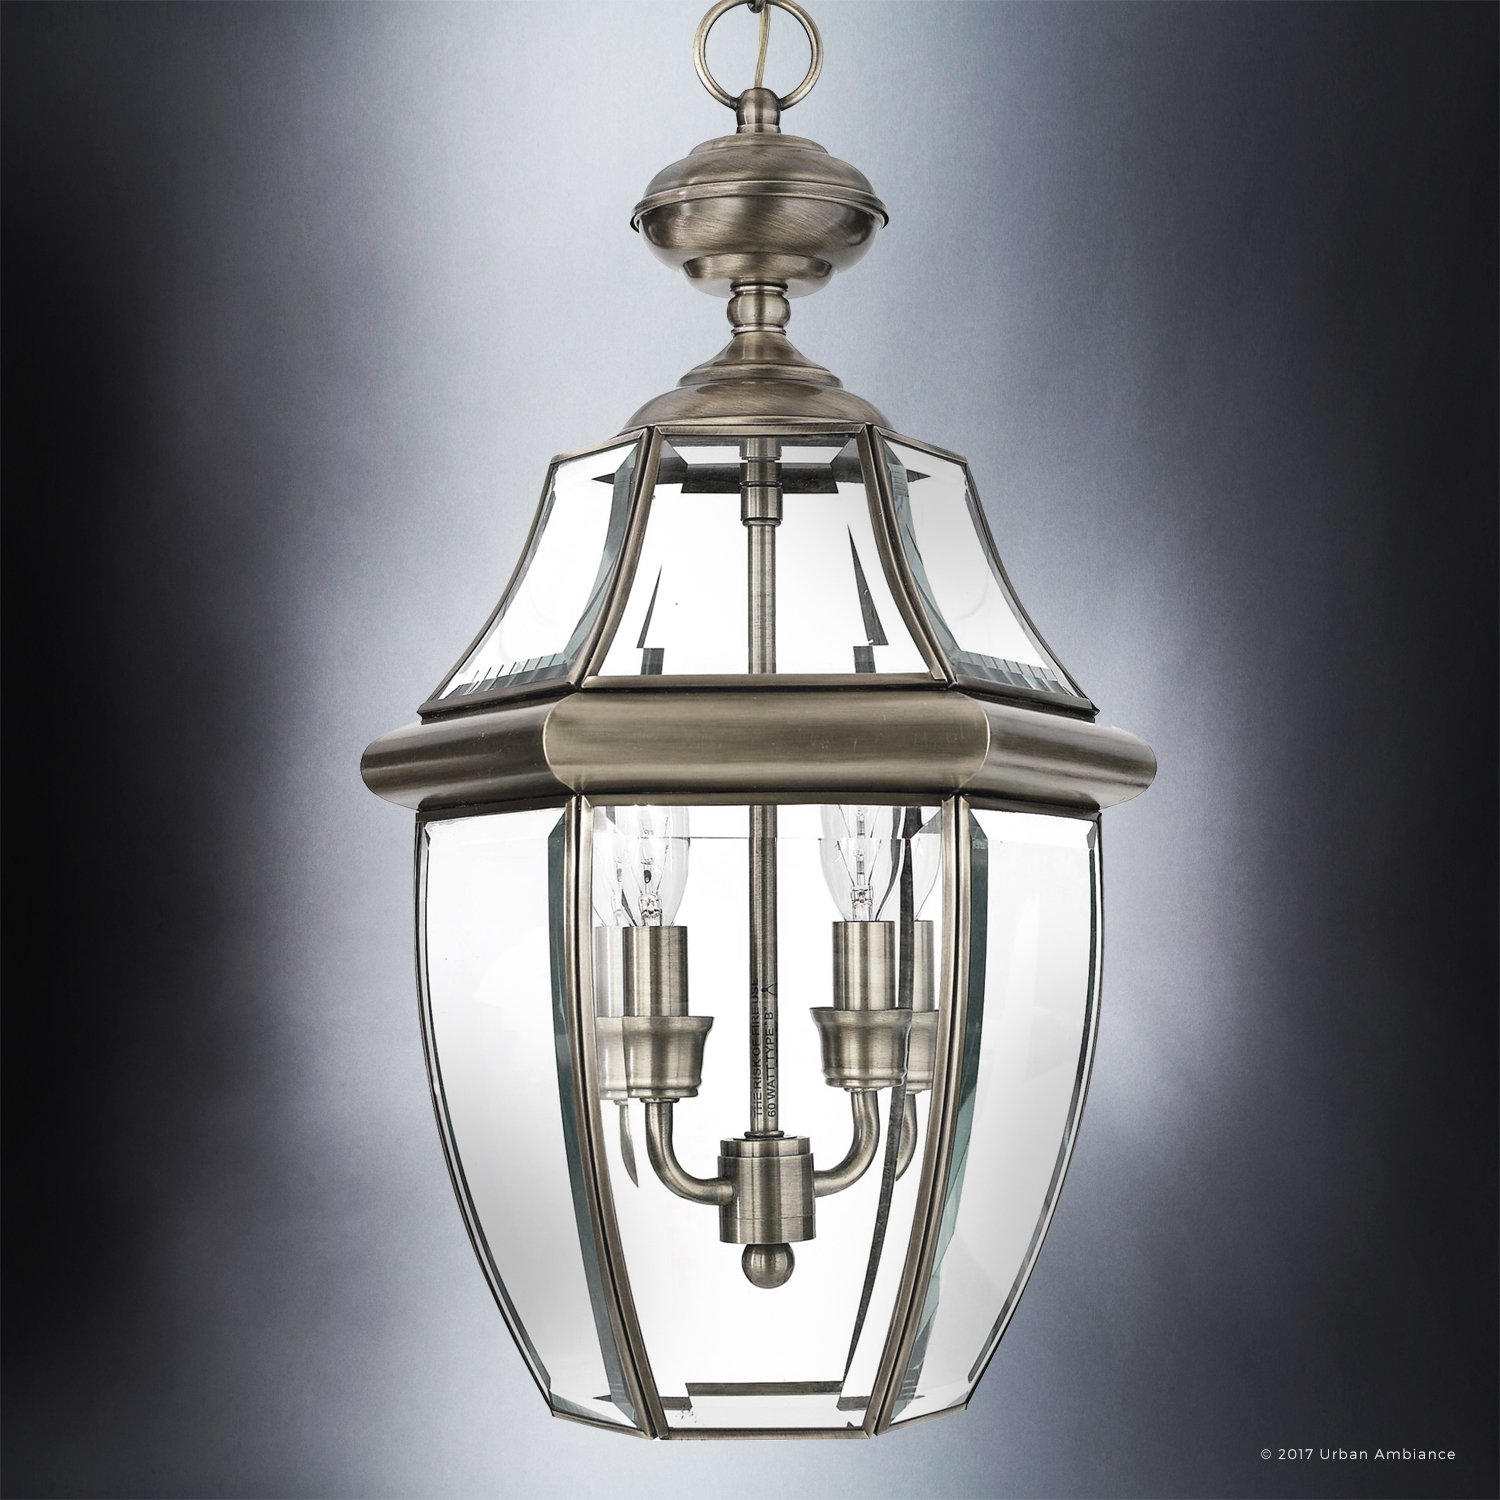 Luxury Colonial Outdoor Pendant Light, Large Size: 19''H x 11''W, with Tudor Style Elements, Versatile Design, Classy Aged Silver Finish and Beveled Glass, UQL1158 by Urban Ambiance by Urban Ambiance (Image #3)